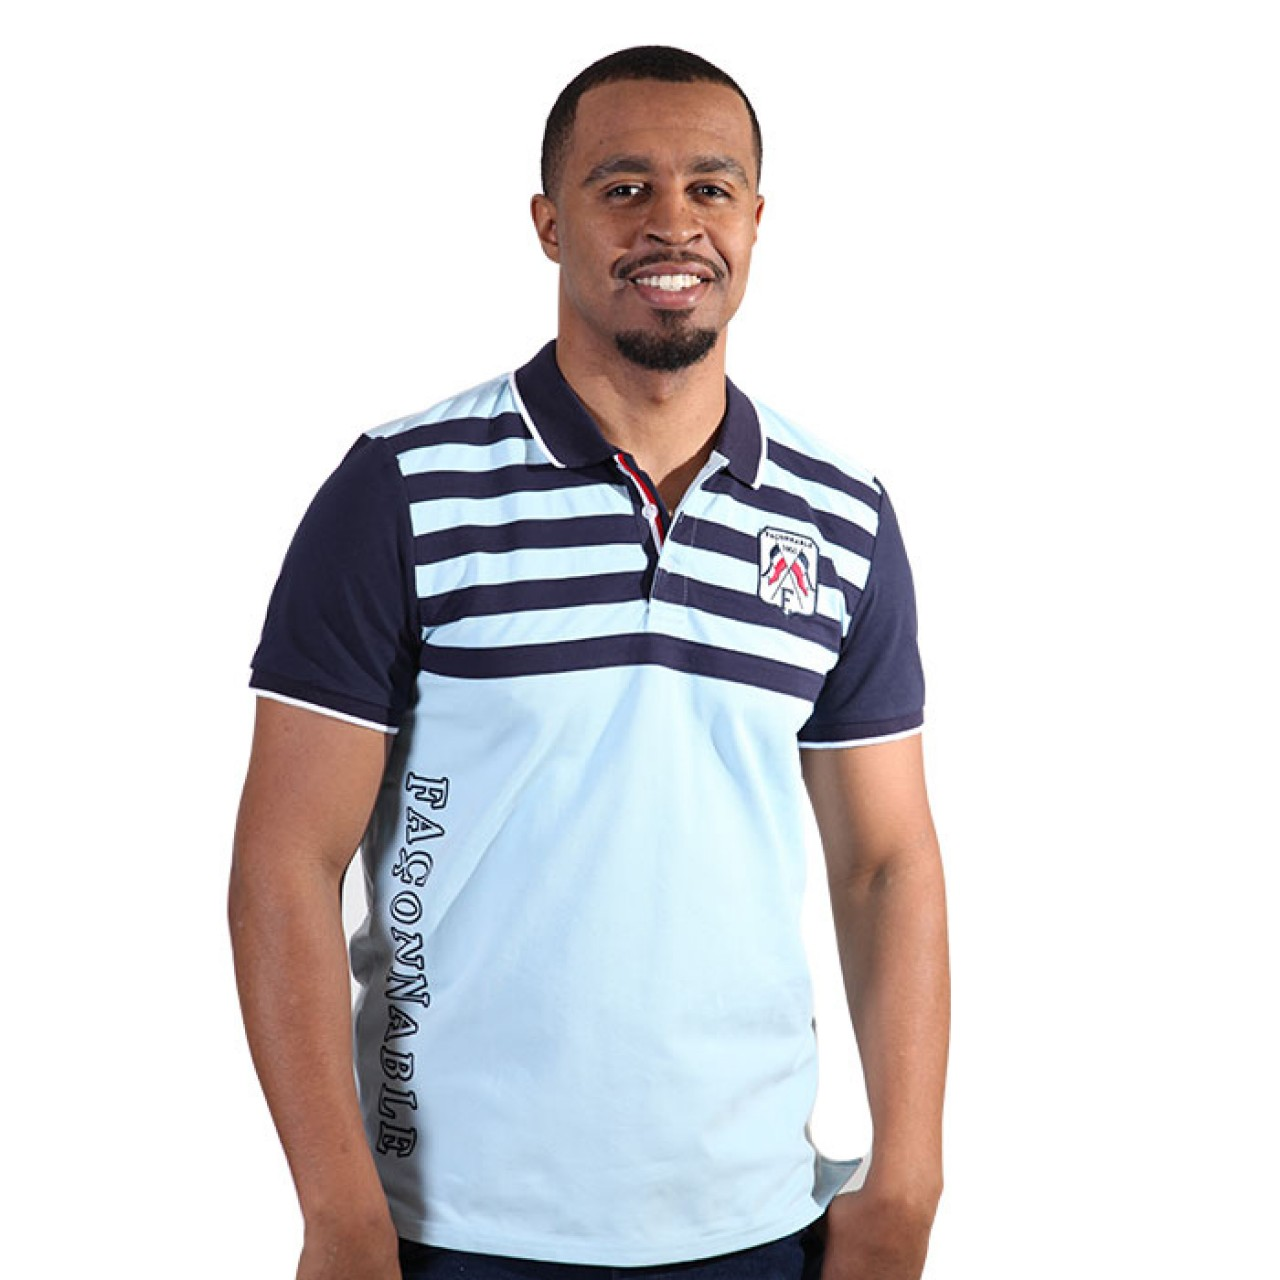 Men's Sky Blue Striped Collared Neck Tees